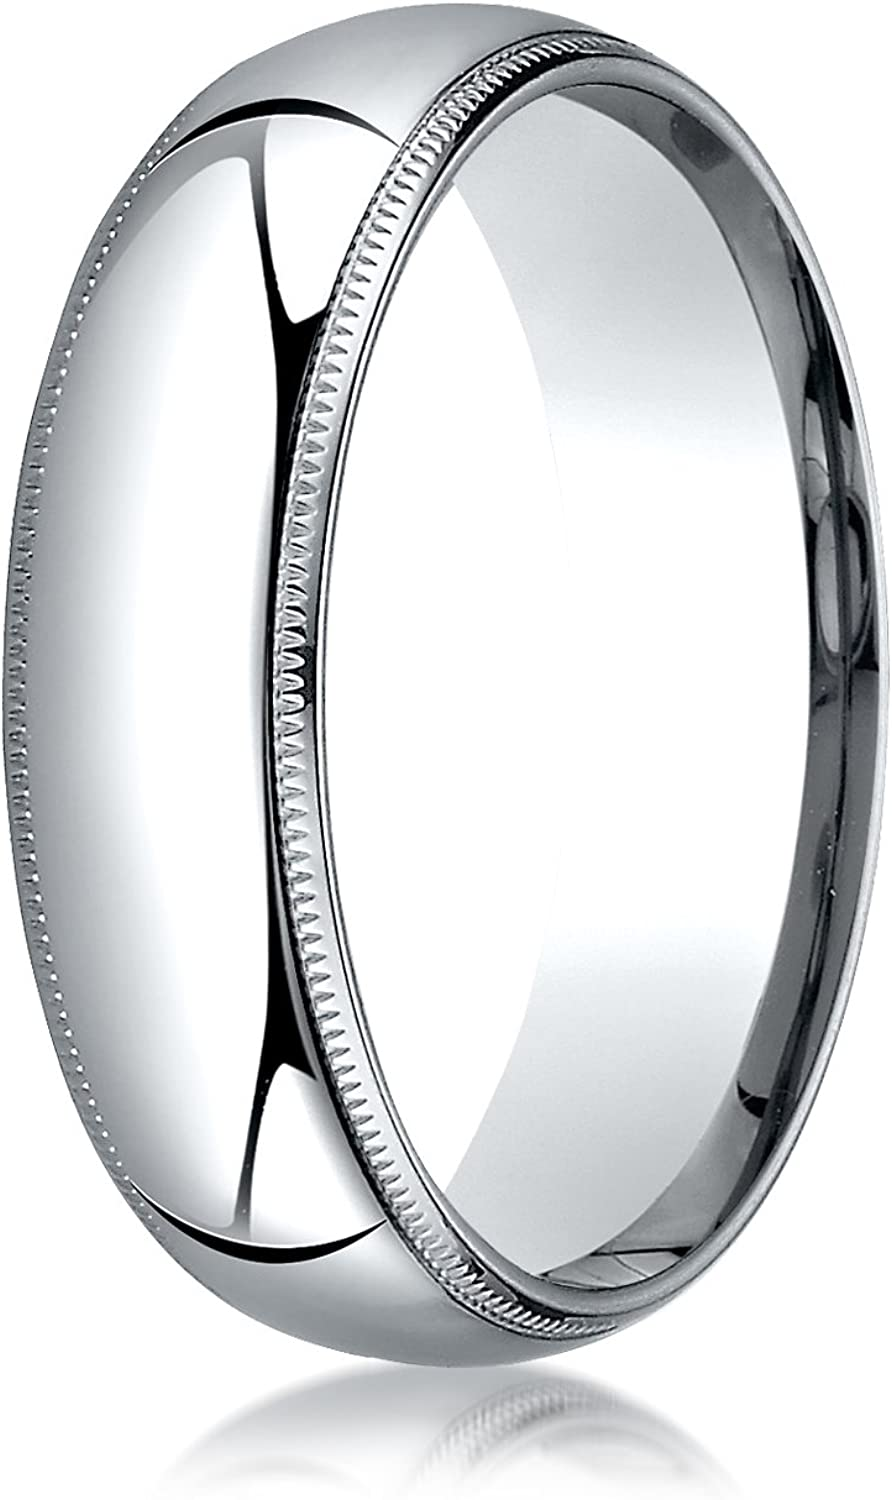 Men's 14K White Gold 6mm Slim Profile Comfort Fit with Milgrain Wedding Band Ring